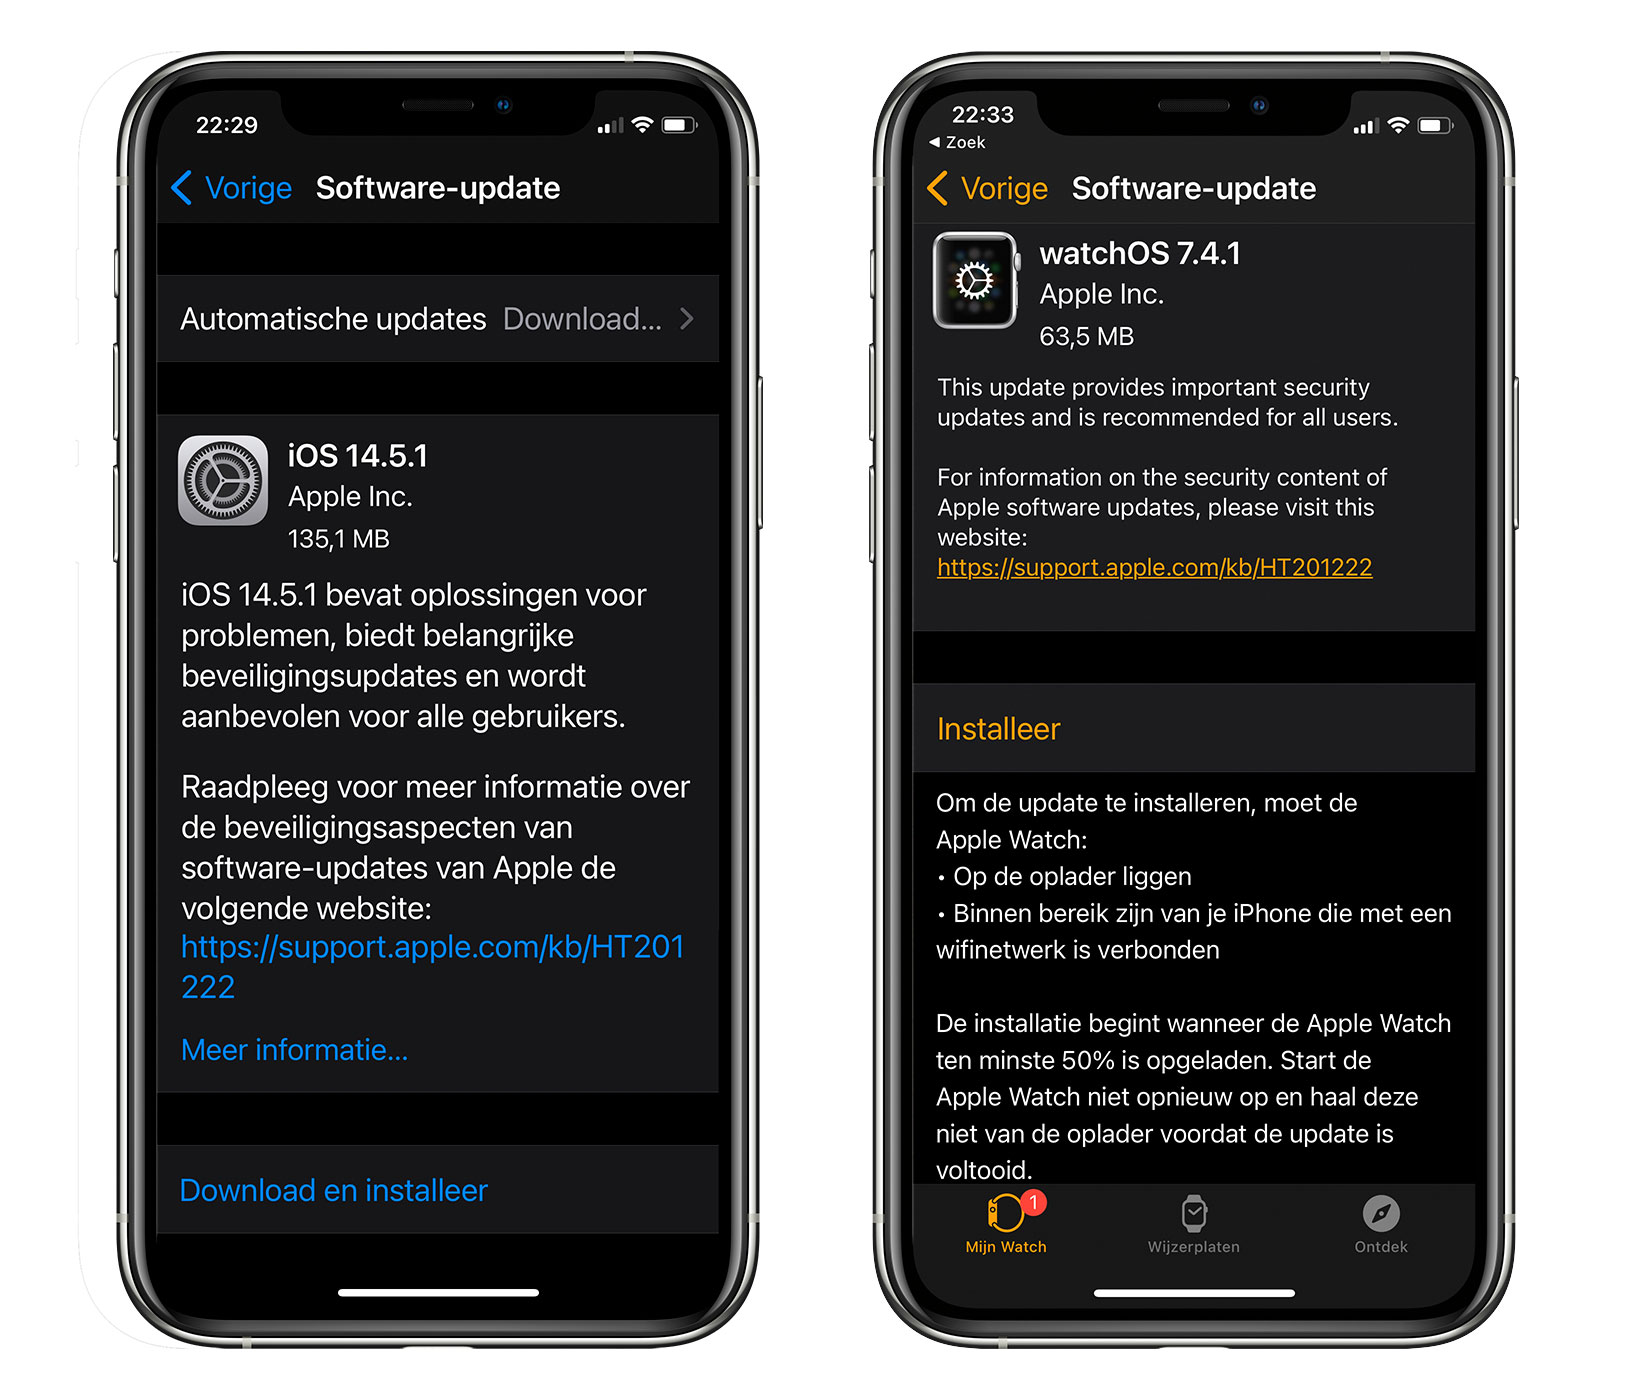 https://www.macfreak.nl/modules/news/images/zArt.iOS14.5.1-watchOS7.4.1ReleaseNotes.jpg